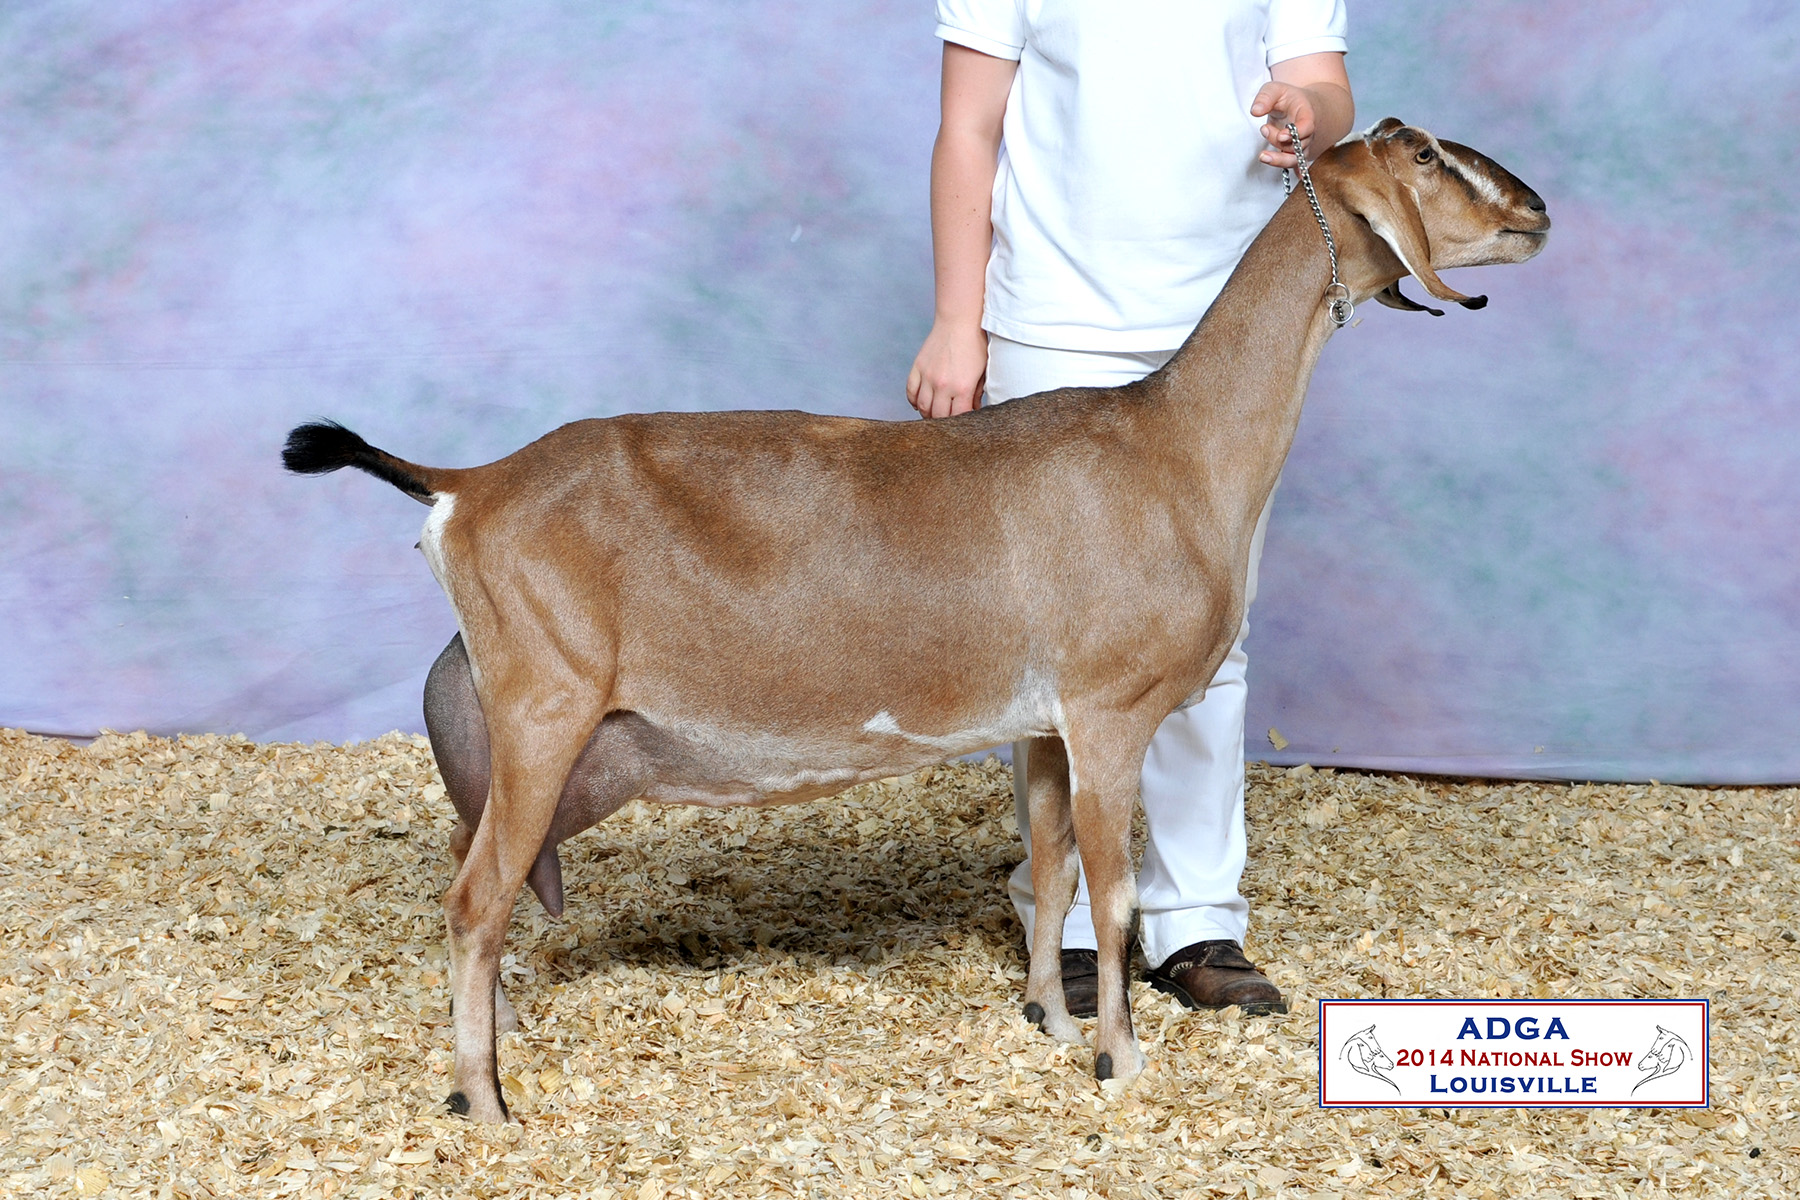 GCH AKM-Farm Carmel 1*M, pictured at 6 years old-Charm's dam